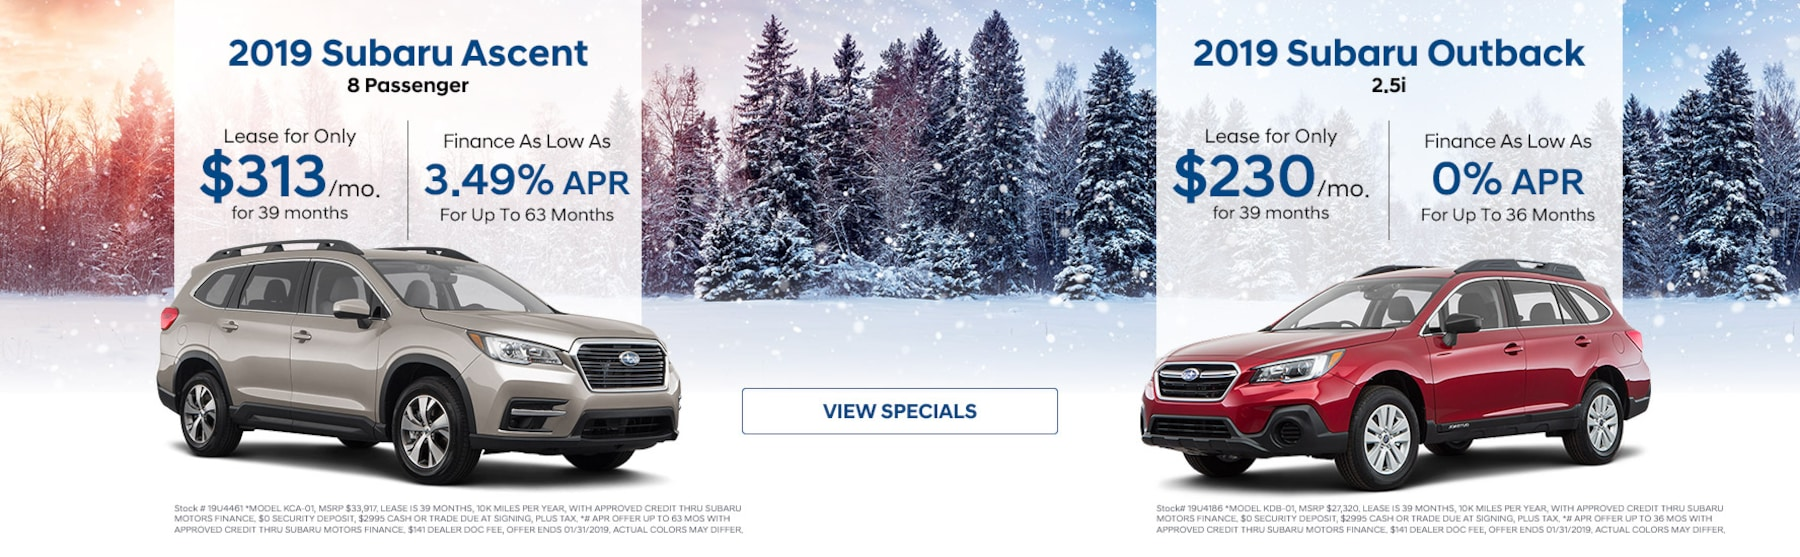 Kenny Ross Subaru Sales In North Huntingdon Township Pa Outback Timing Chain Previous Next